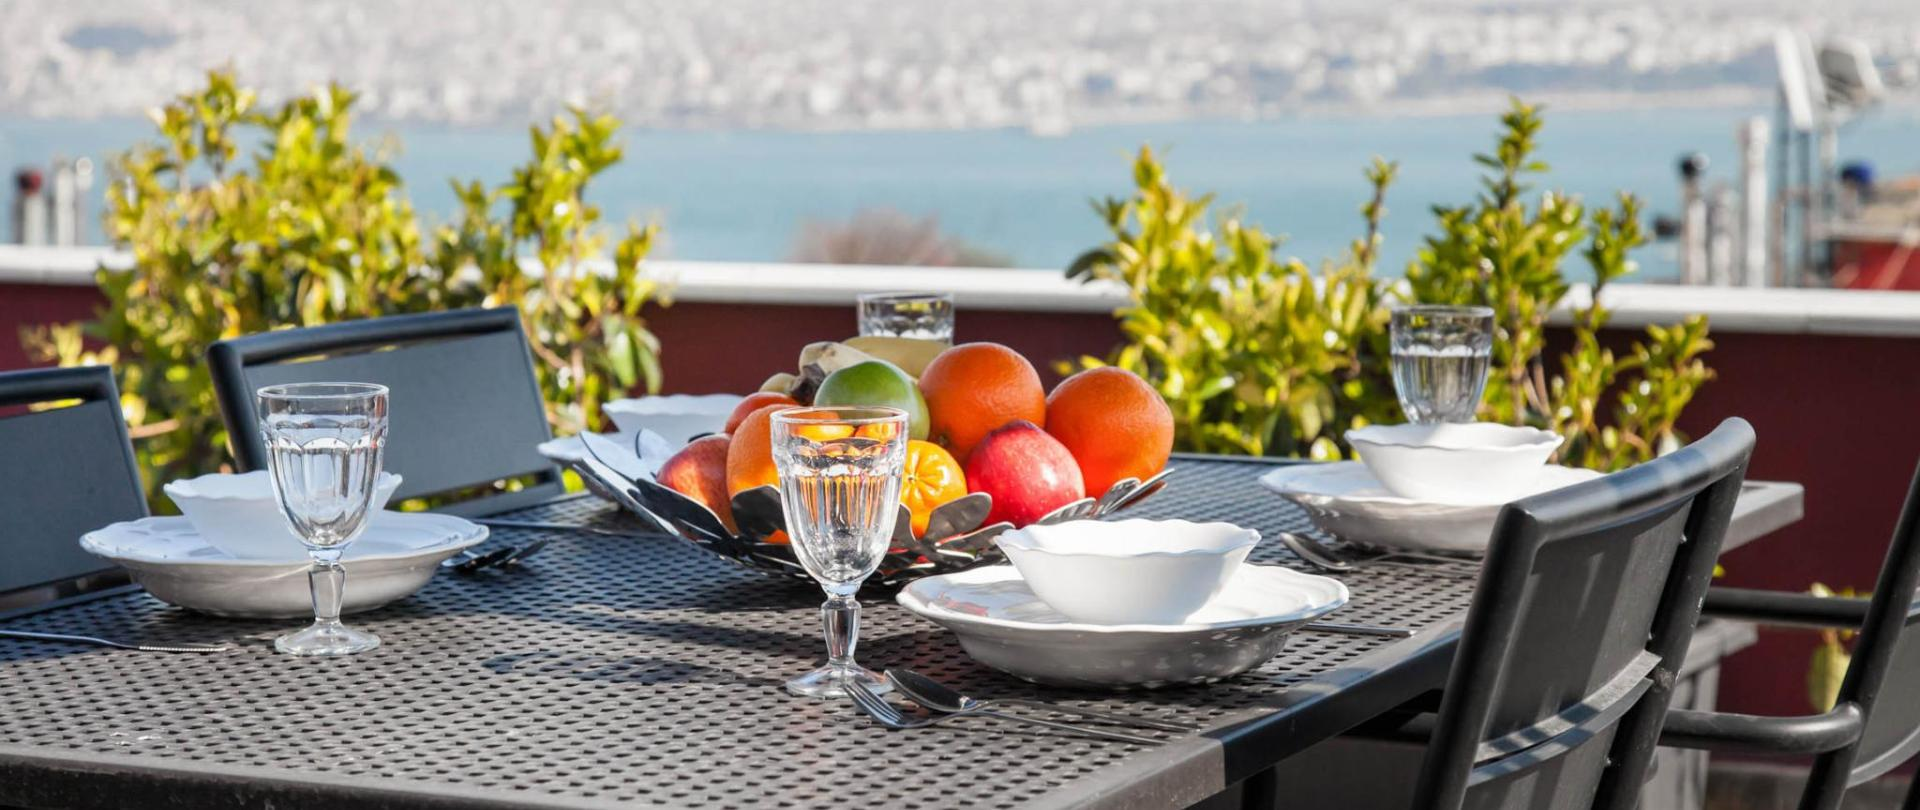 IST FLATS Serviced Apartments - Galata